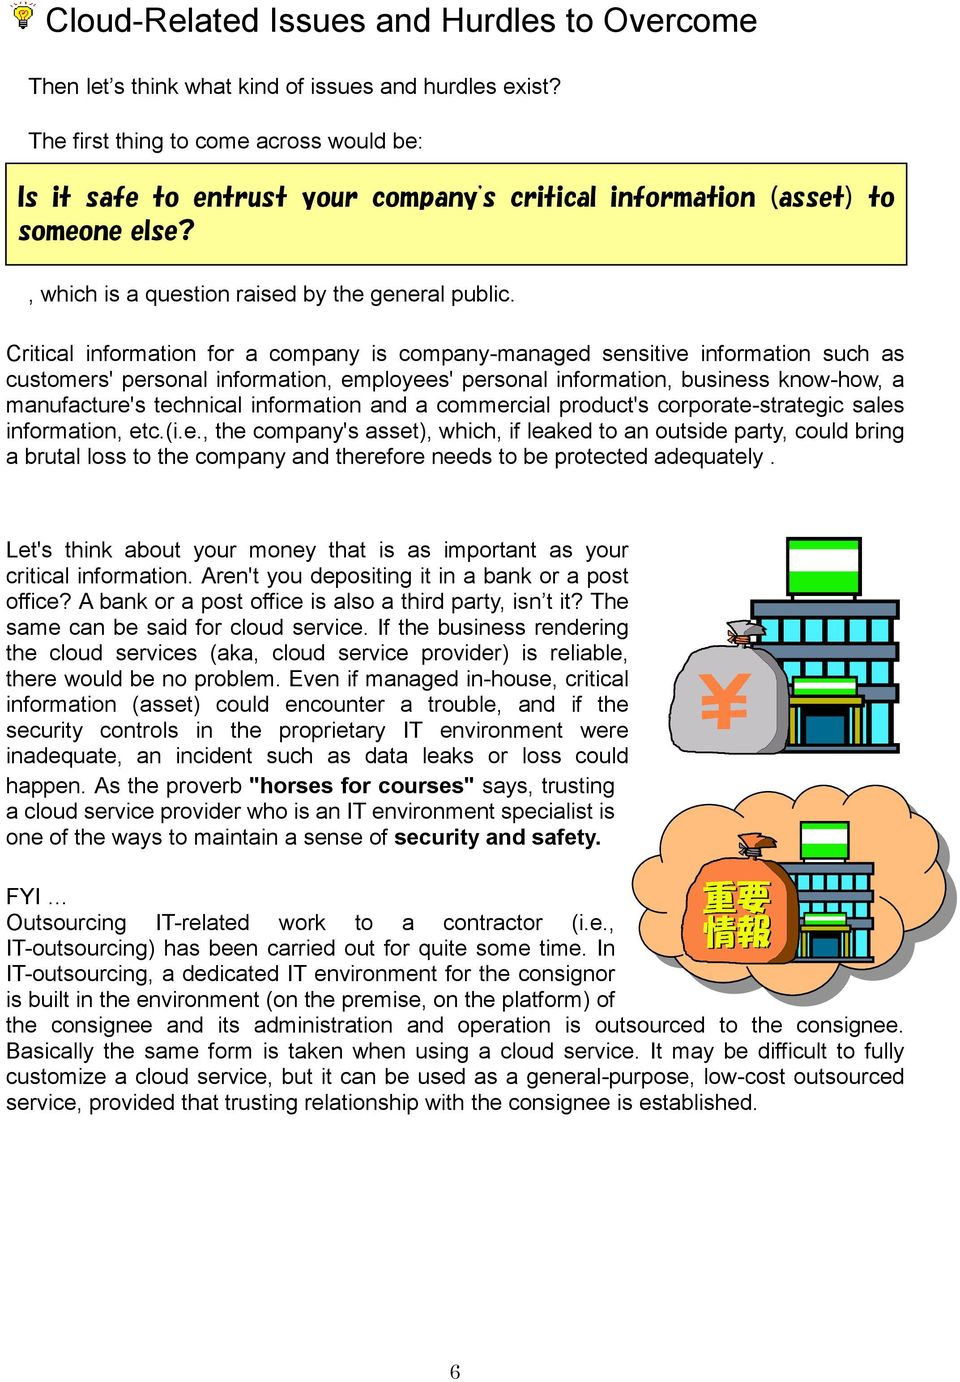 Critical information for a company is company-managed sensitive information such as customers' personal information, employees' personal information, business know-how, a manufacture's technical